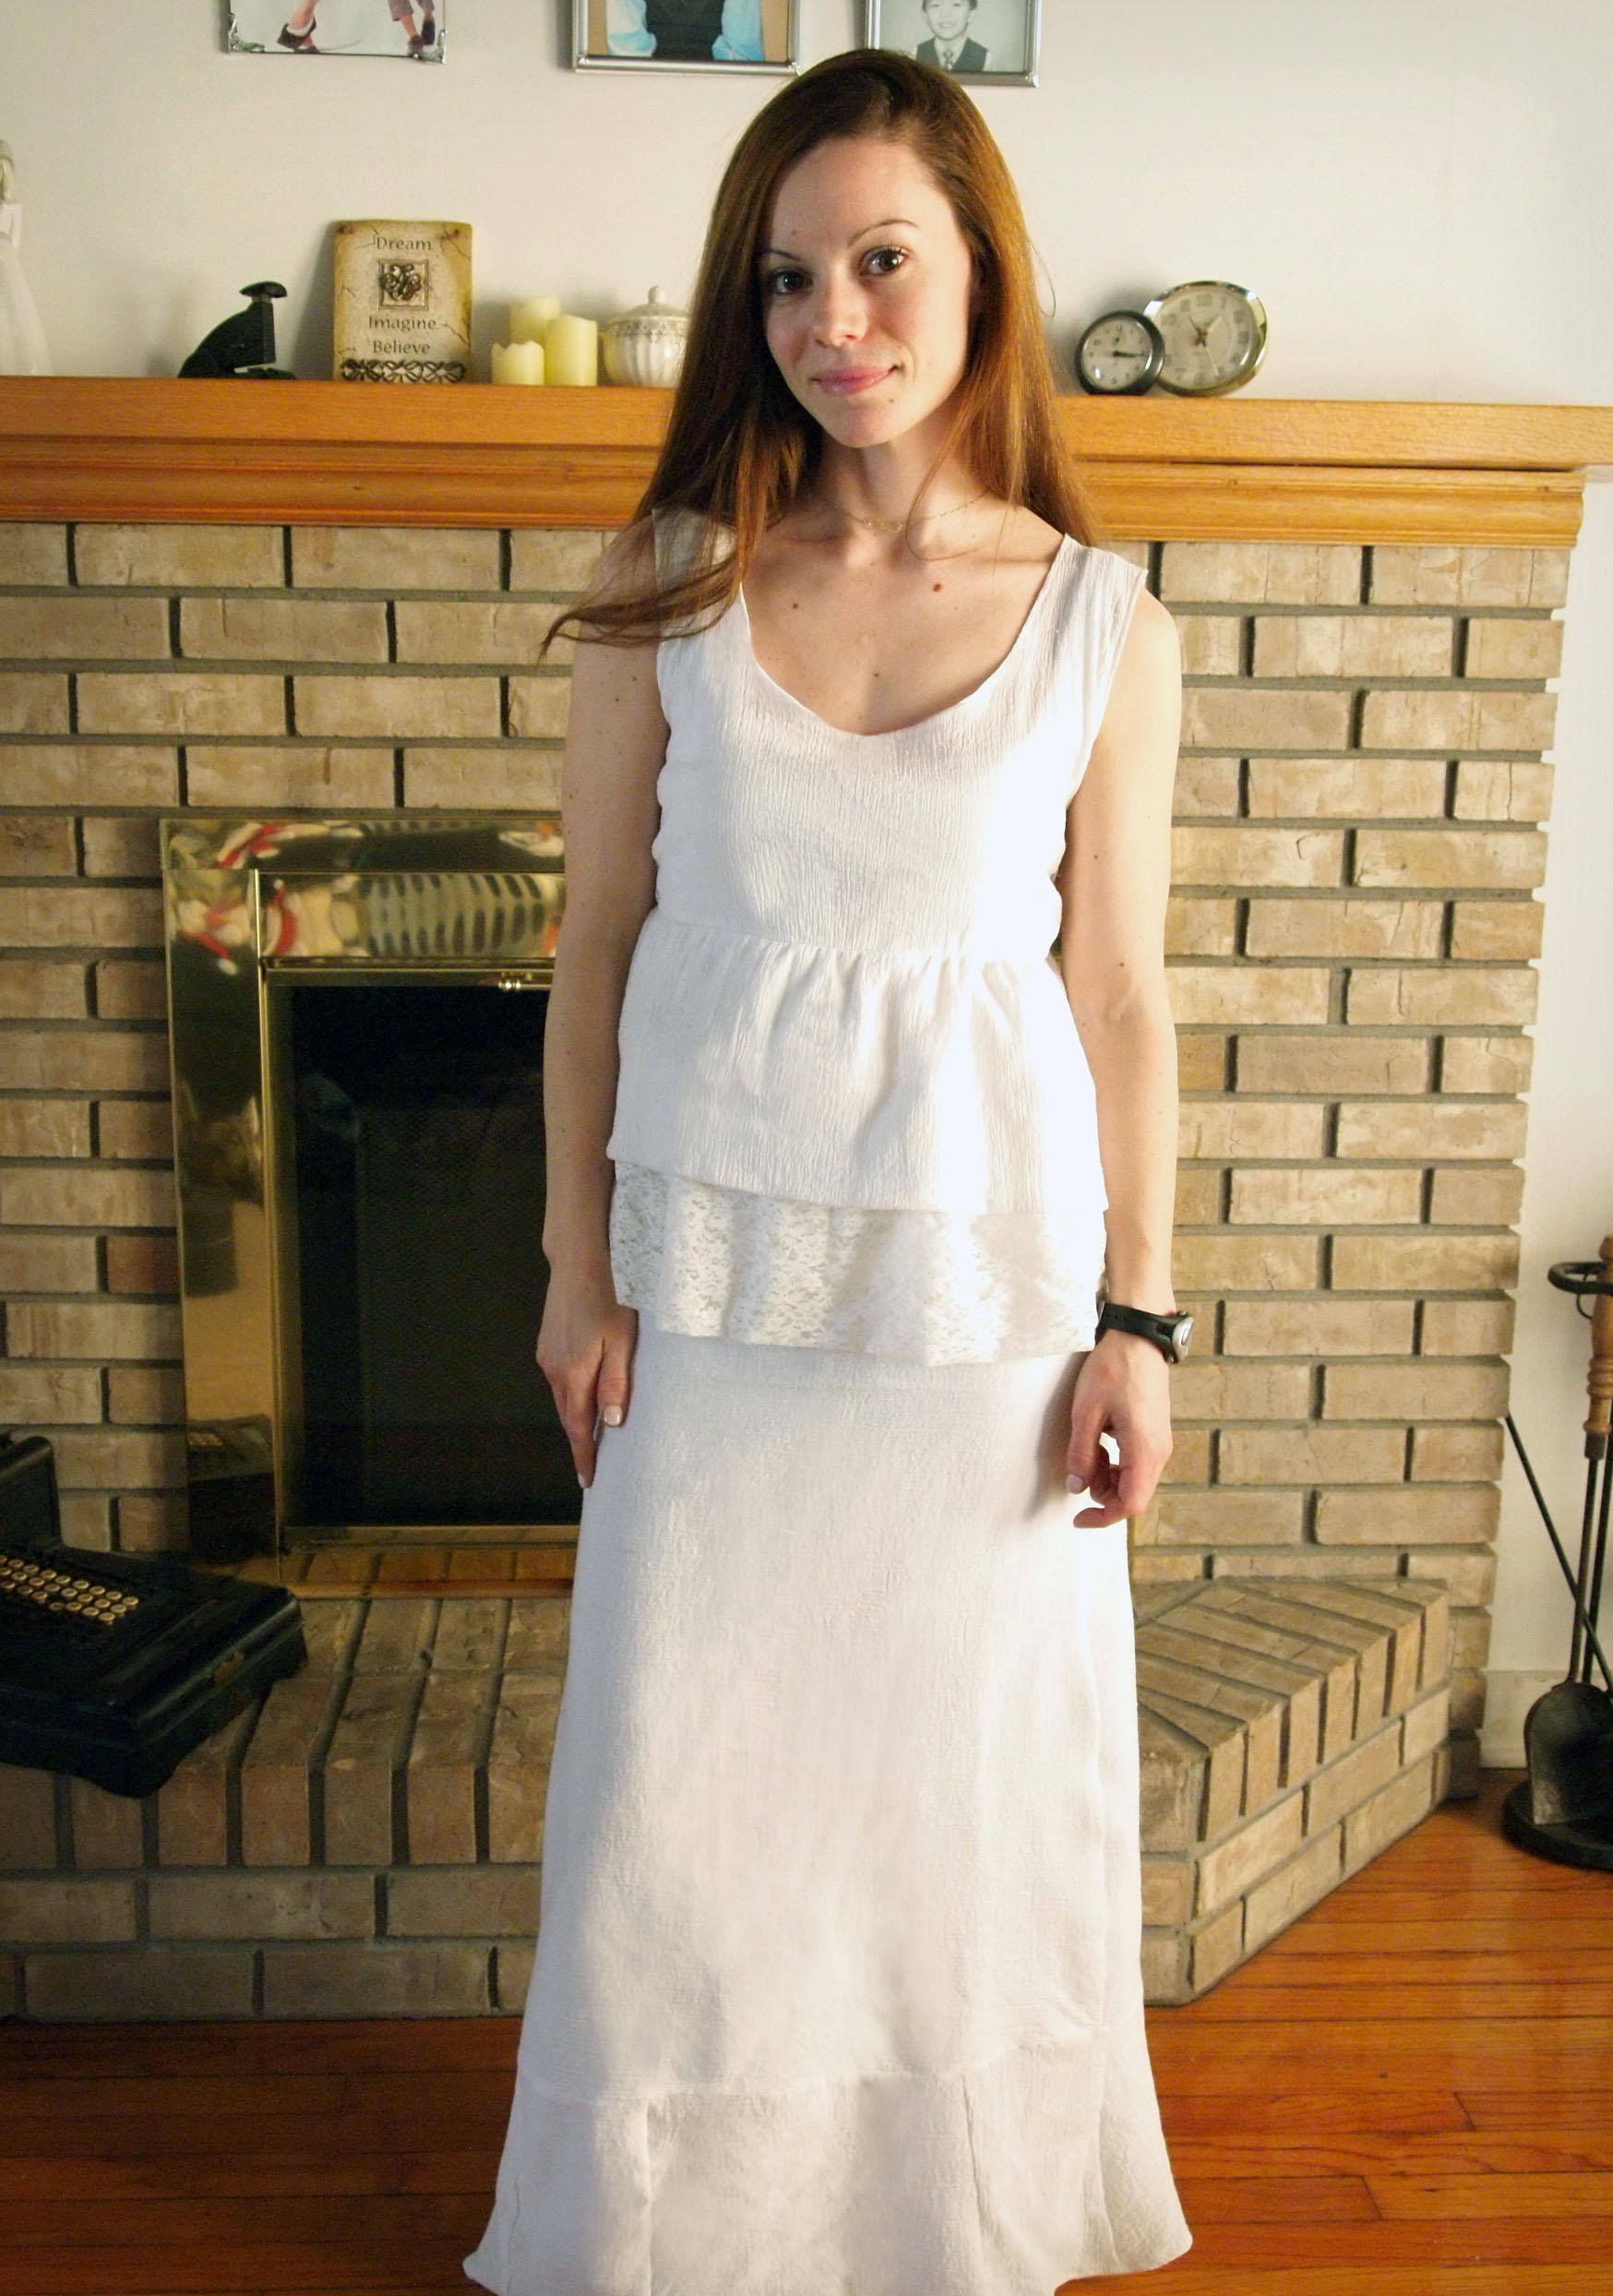 Picture of Summer Maxi Skirt - Simple & Stylish